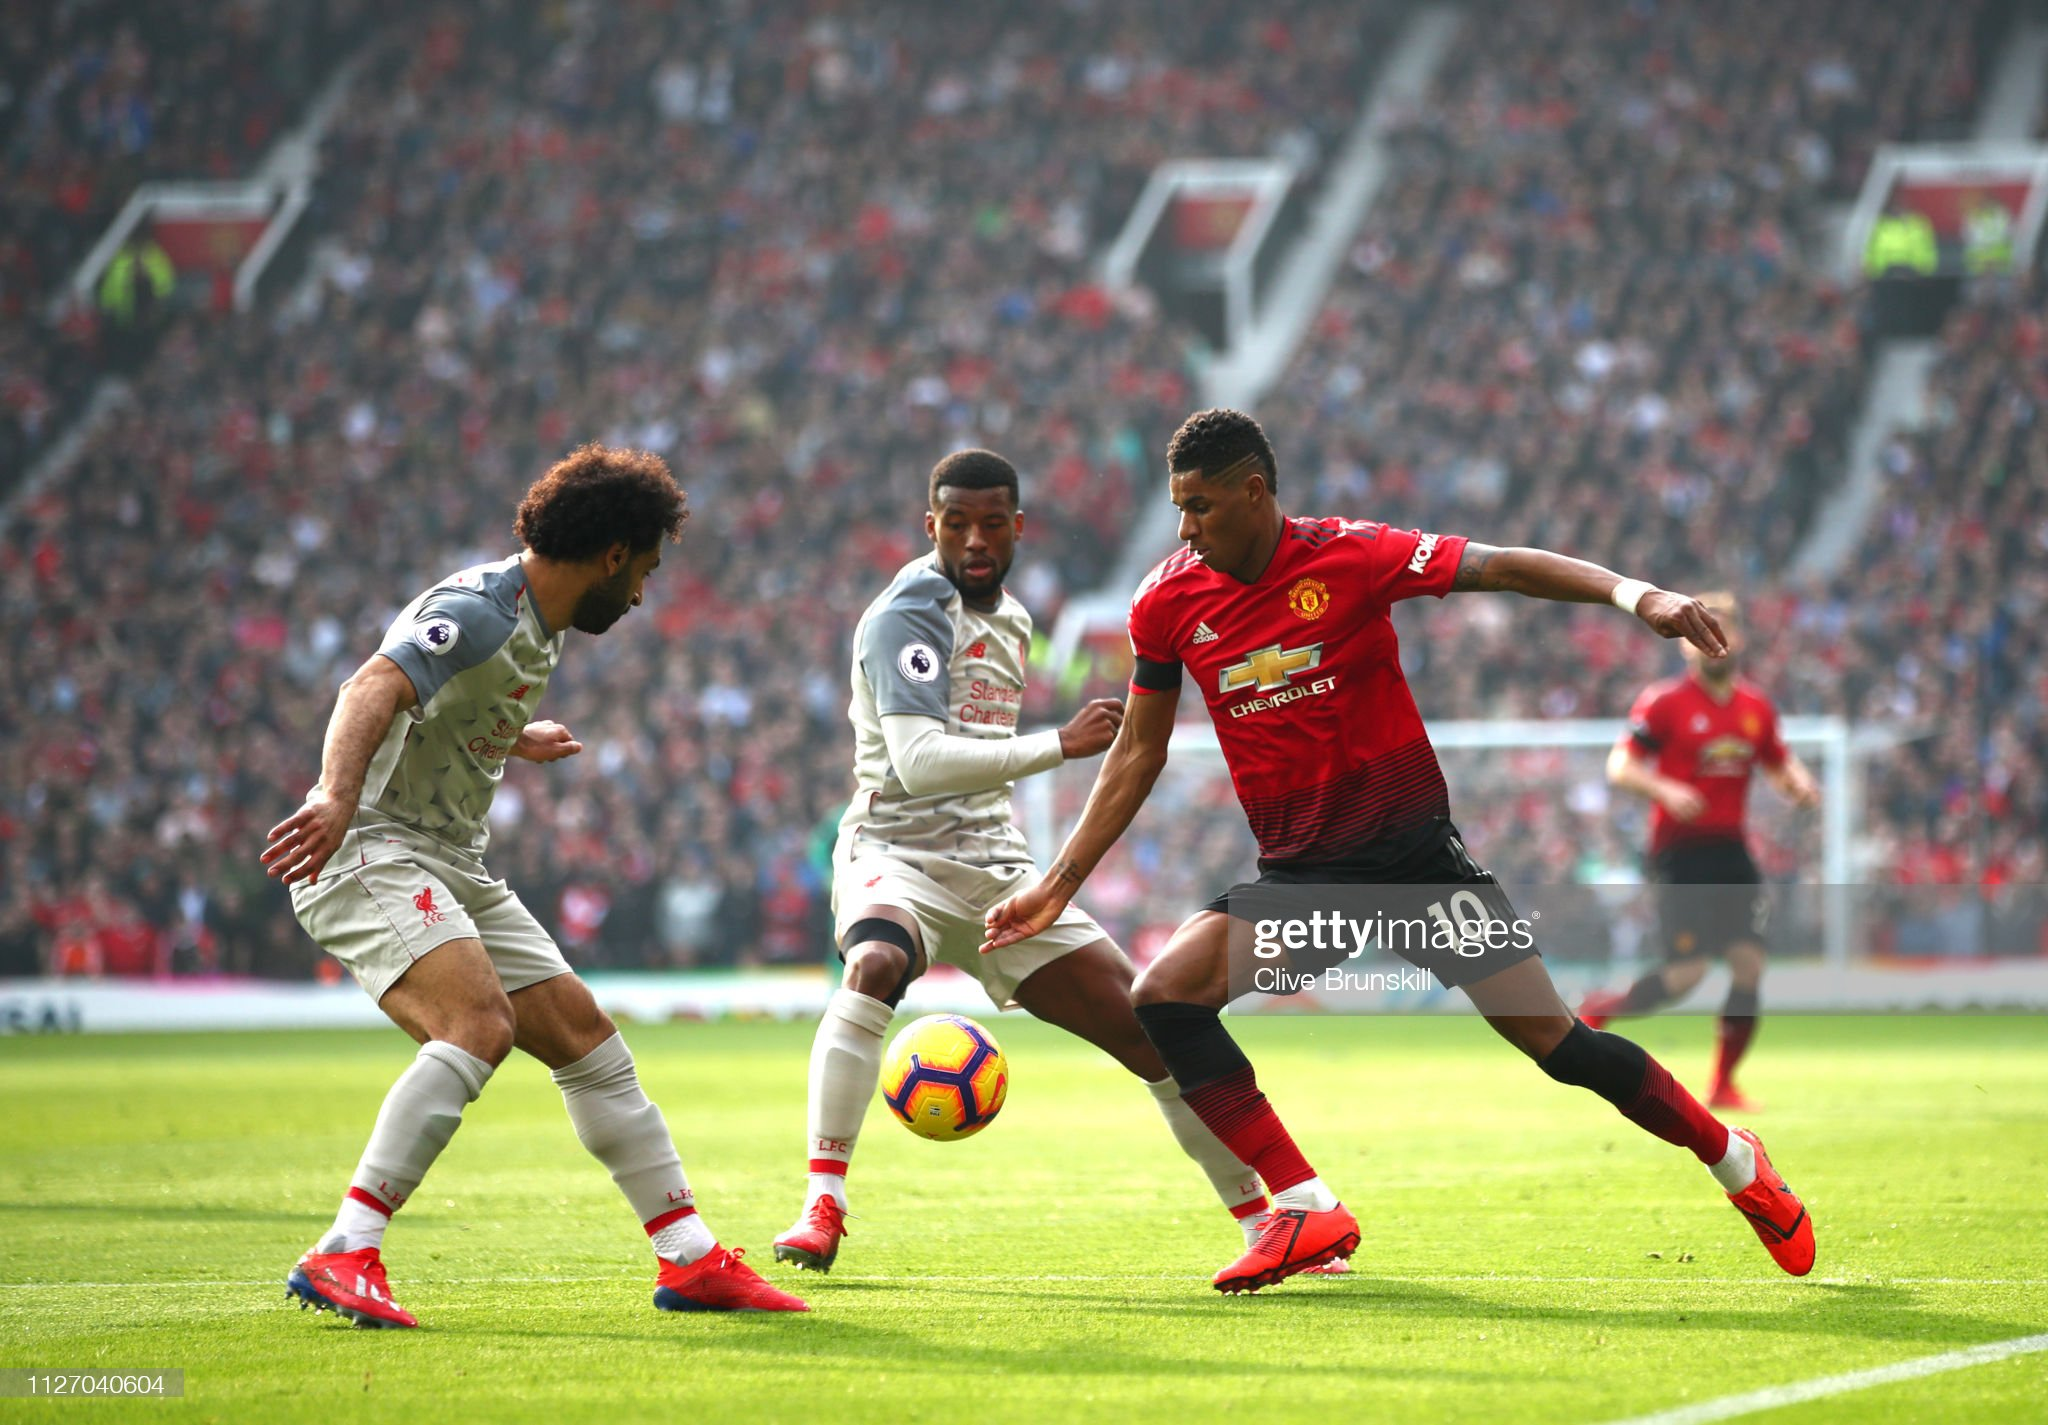 Liverpool v Manchester United preview, prediction and odds